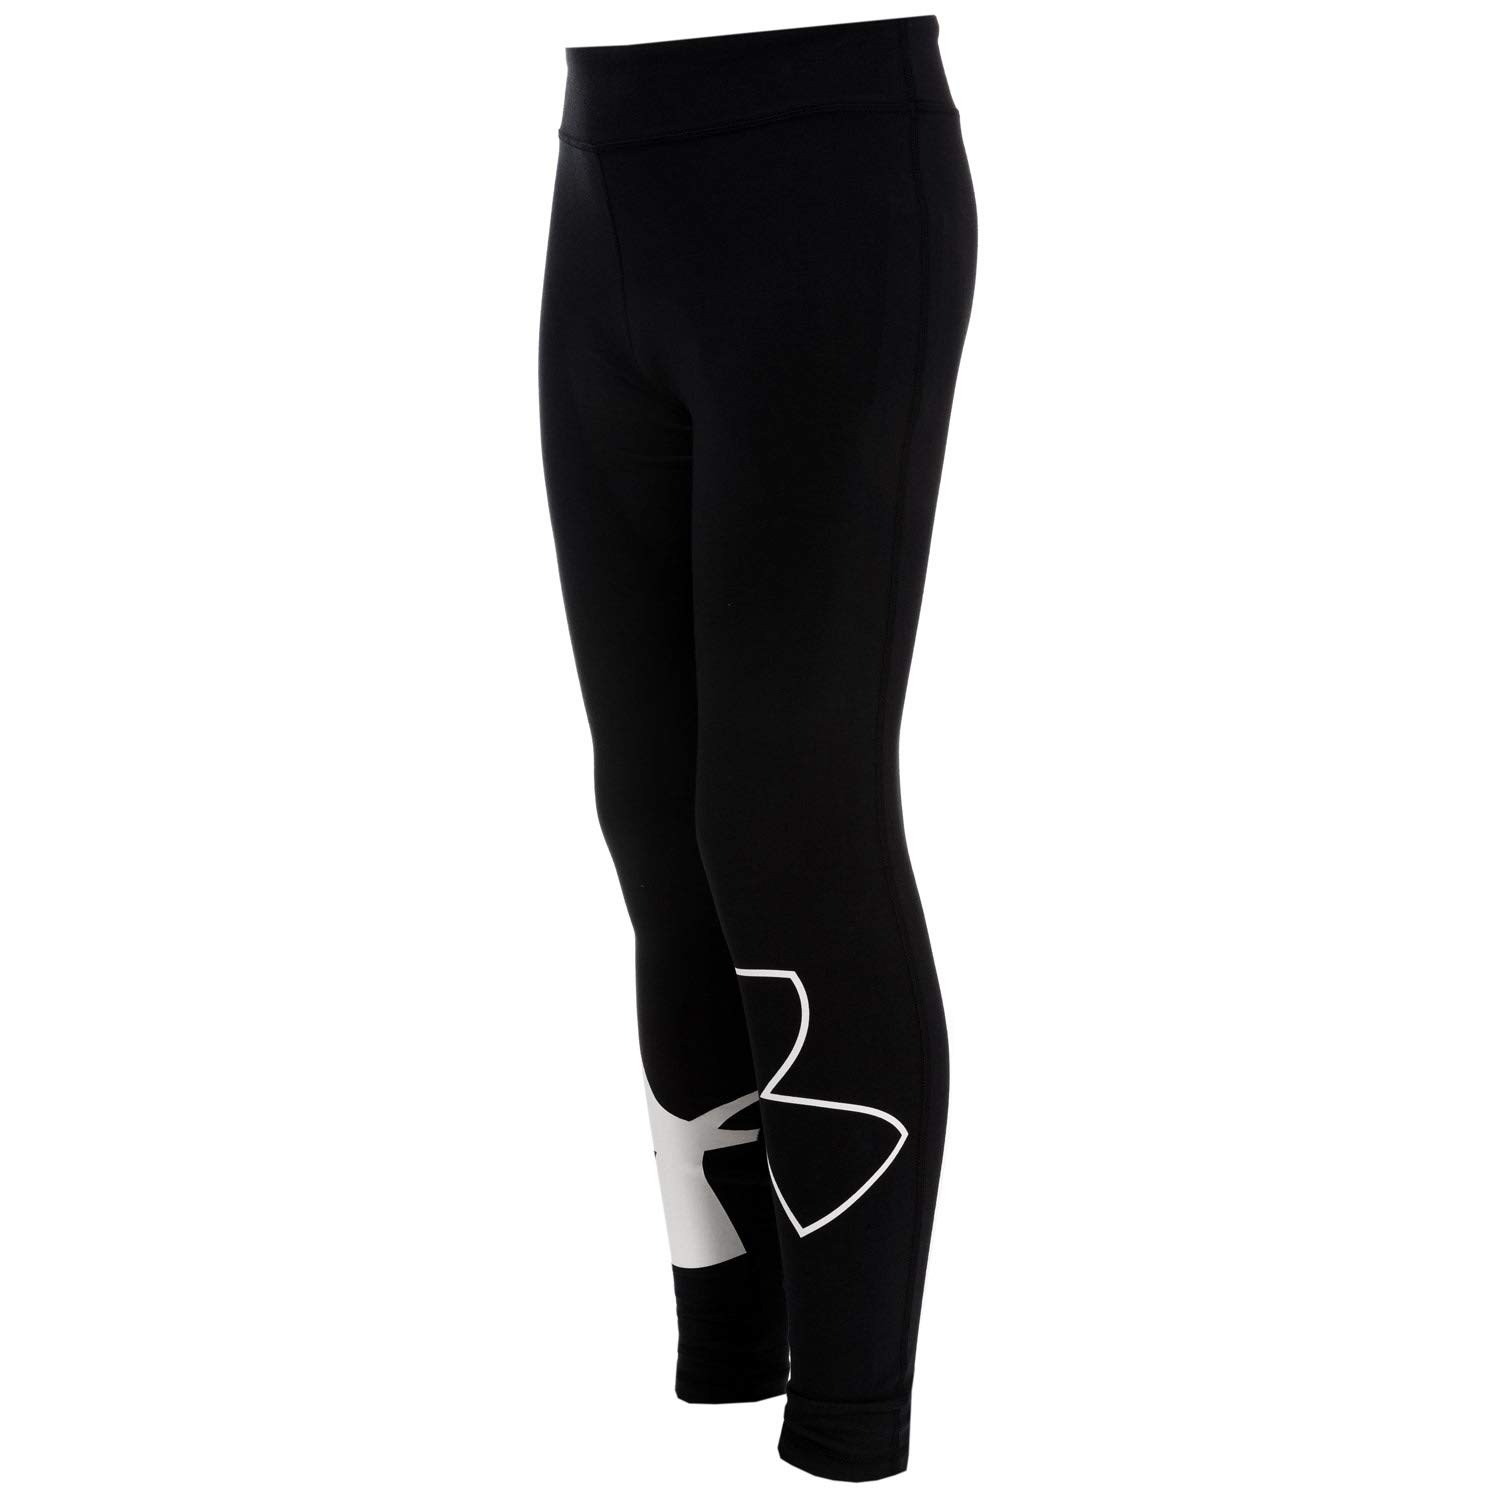 Under Armour Kids Girl's Favorite Knit Leggings (Big Kids) Black/White Large